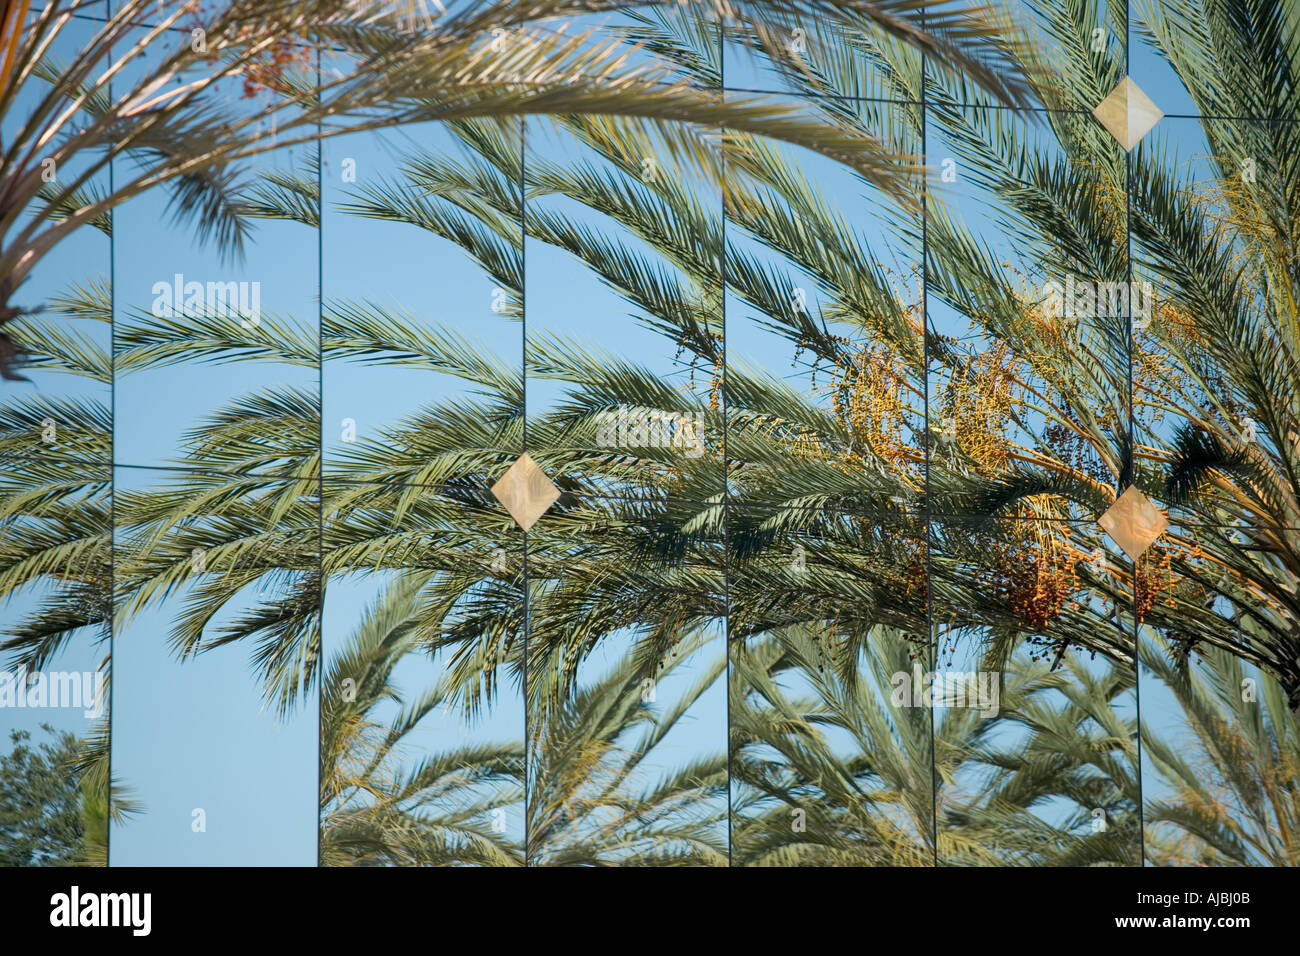 Multiple reflections of a palm tree on a mirrored surface building  Stock Photo